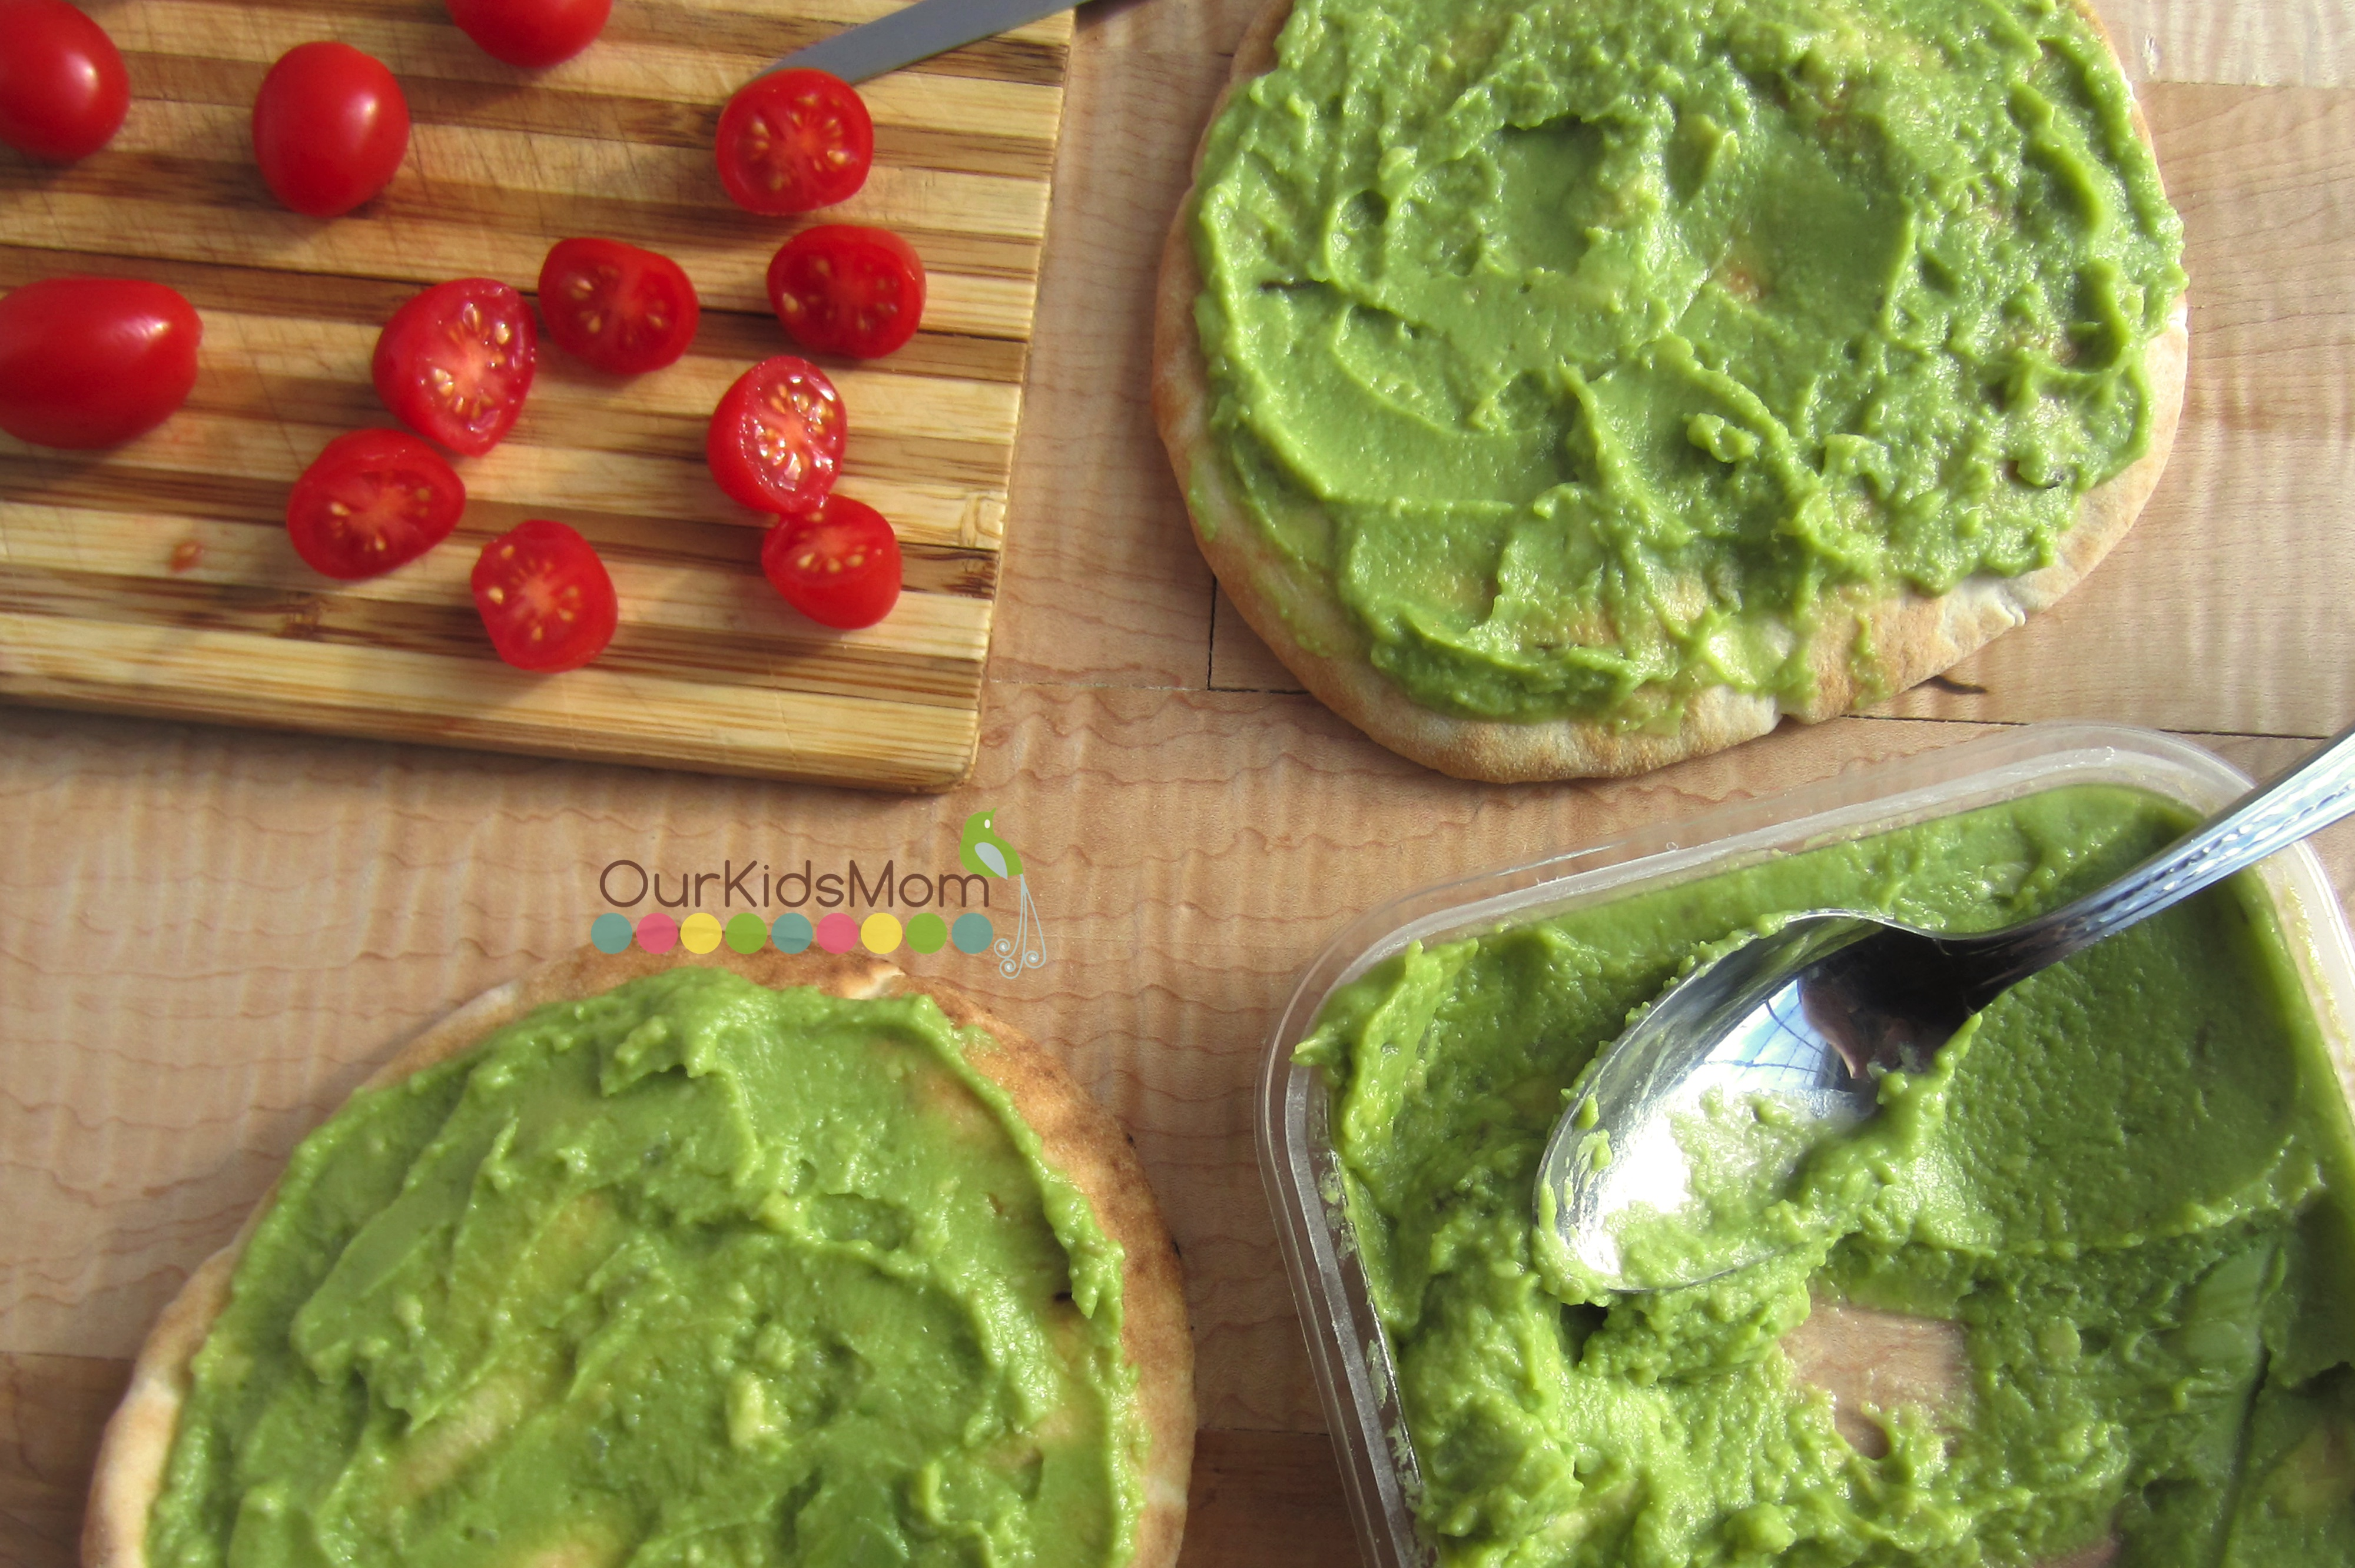 Spread a thin layer of guacamole across each of the pita breads.